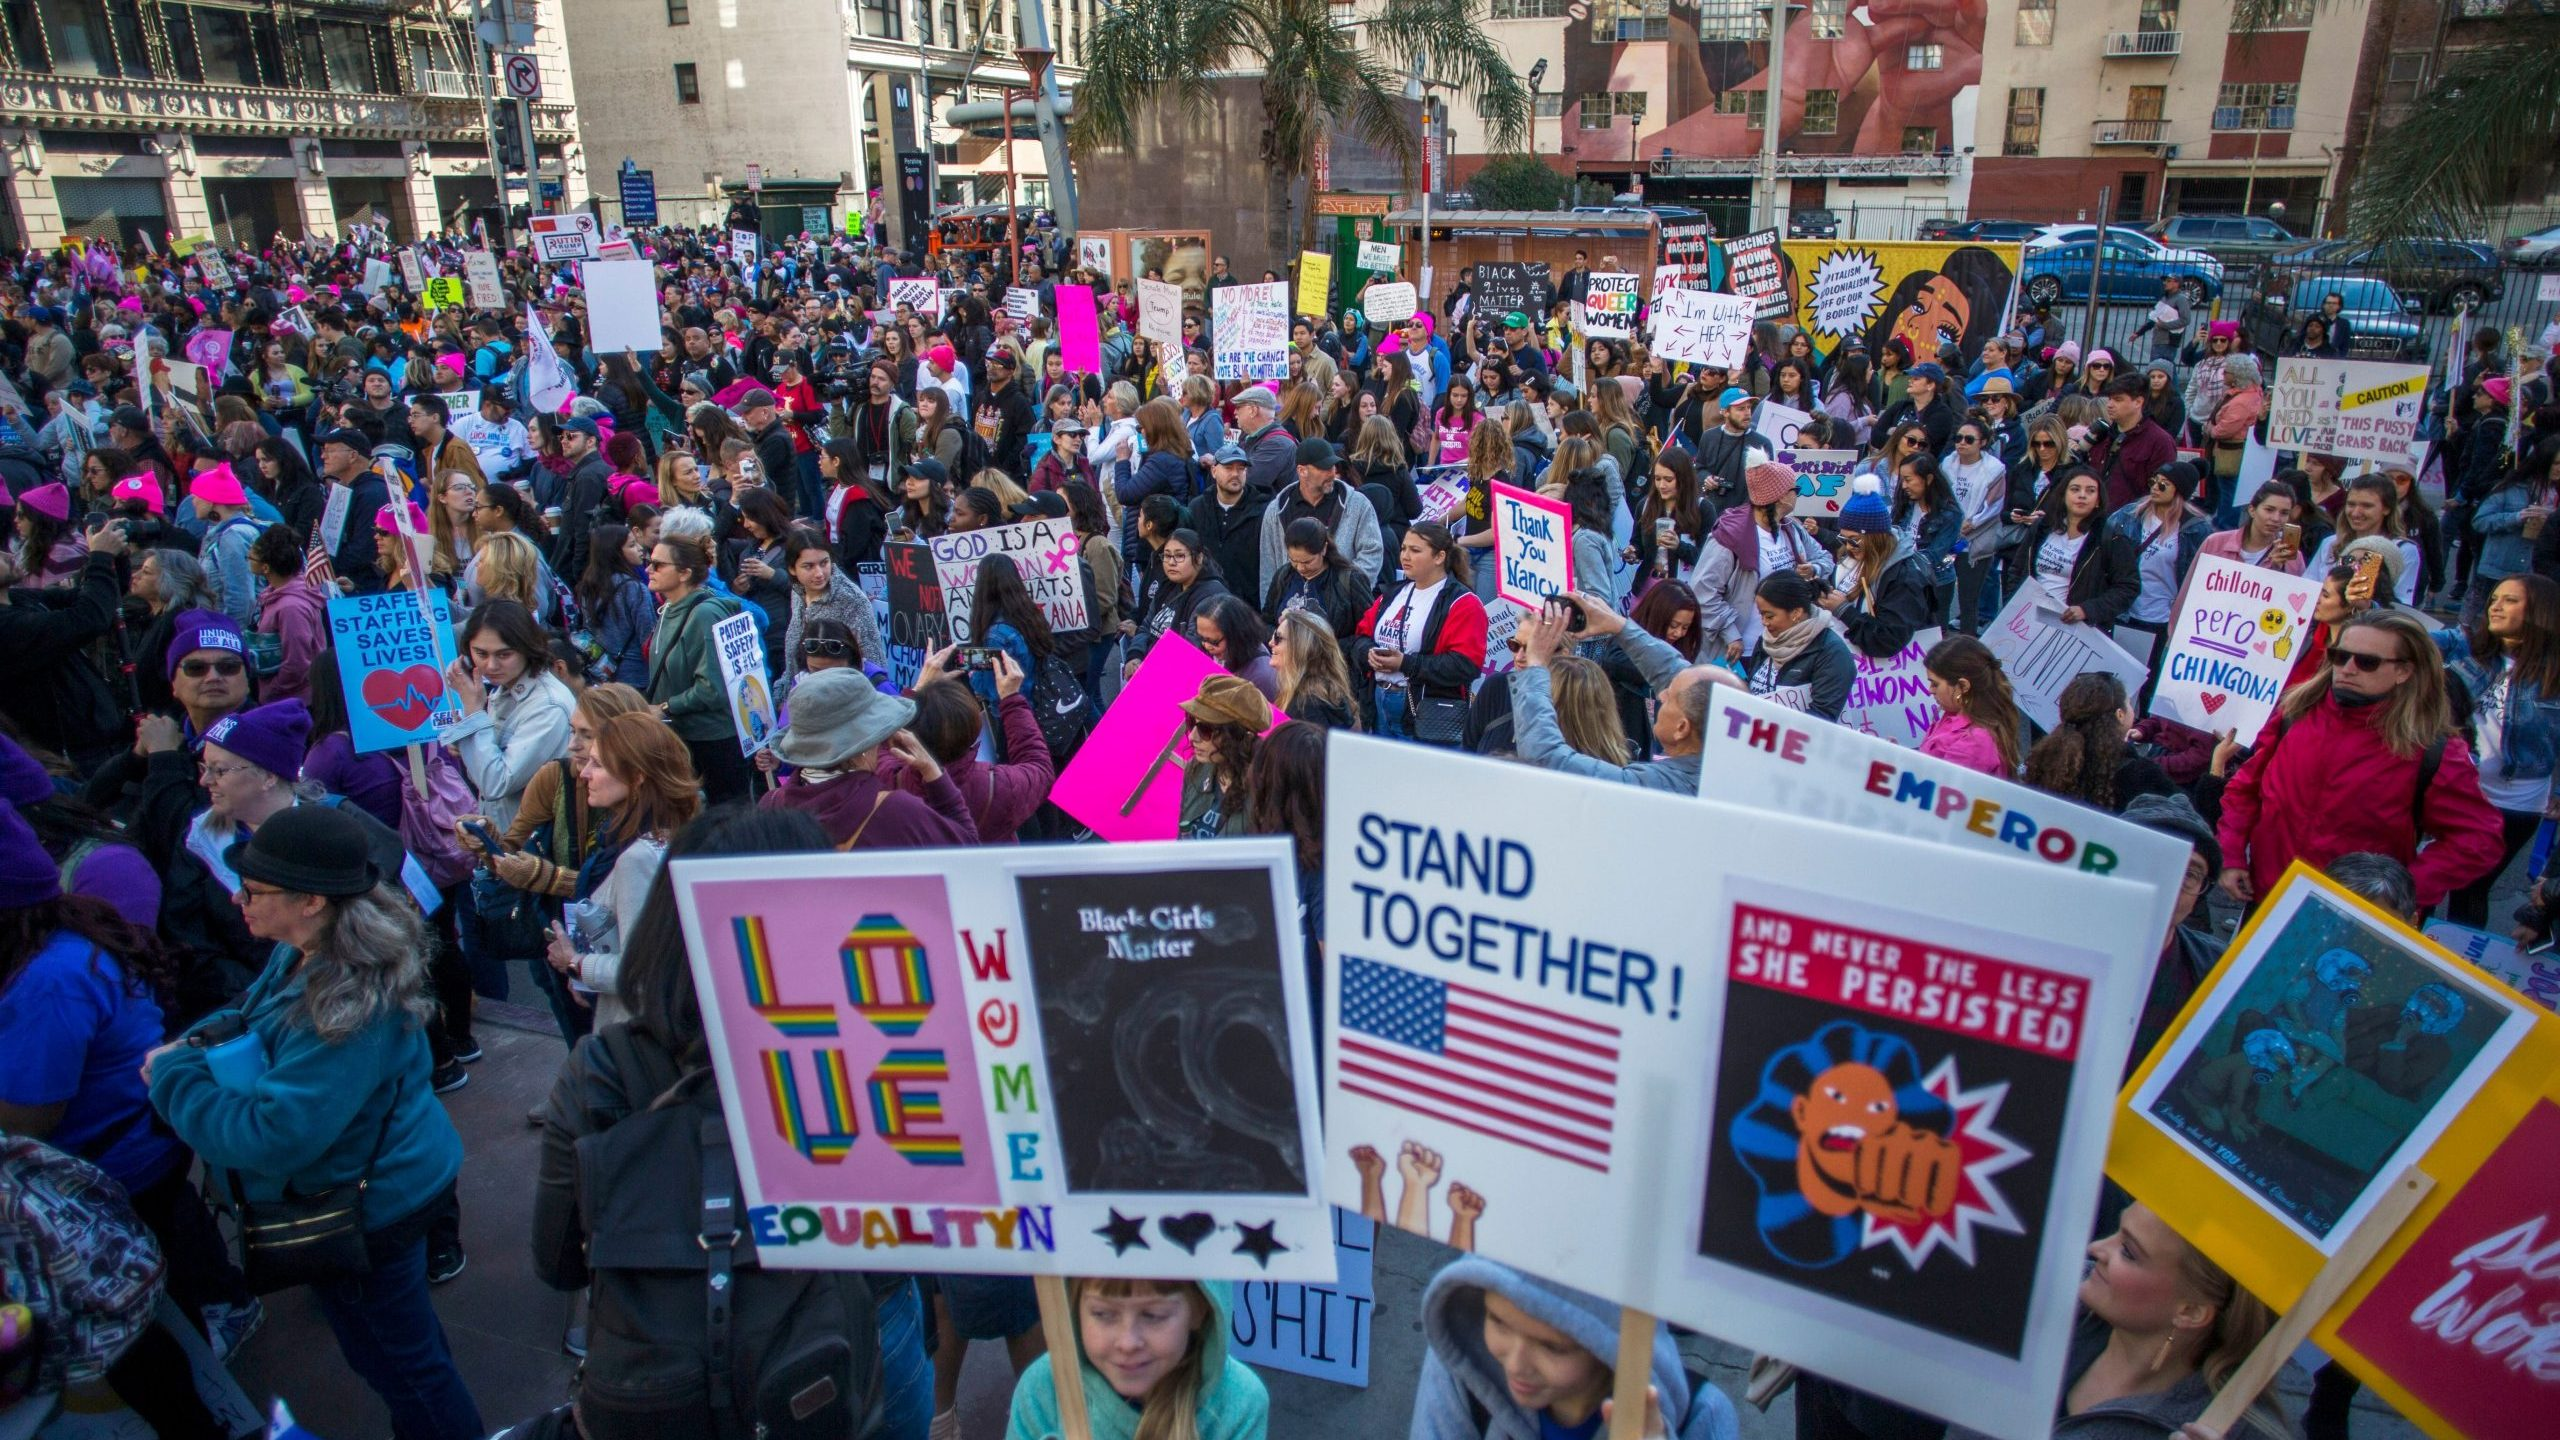 Marchers fill Pershing Sqaure during the Women's March on Jan. 18, 2020 in downtown Los Angeles. (Credit: APU GOMES/AFP via Getty Images)